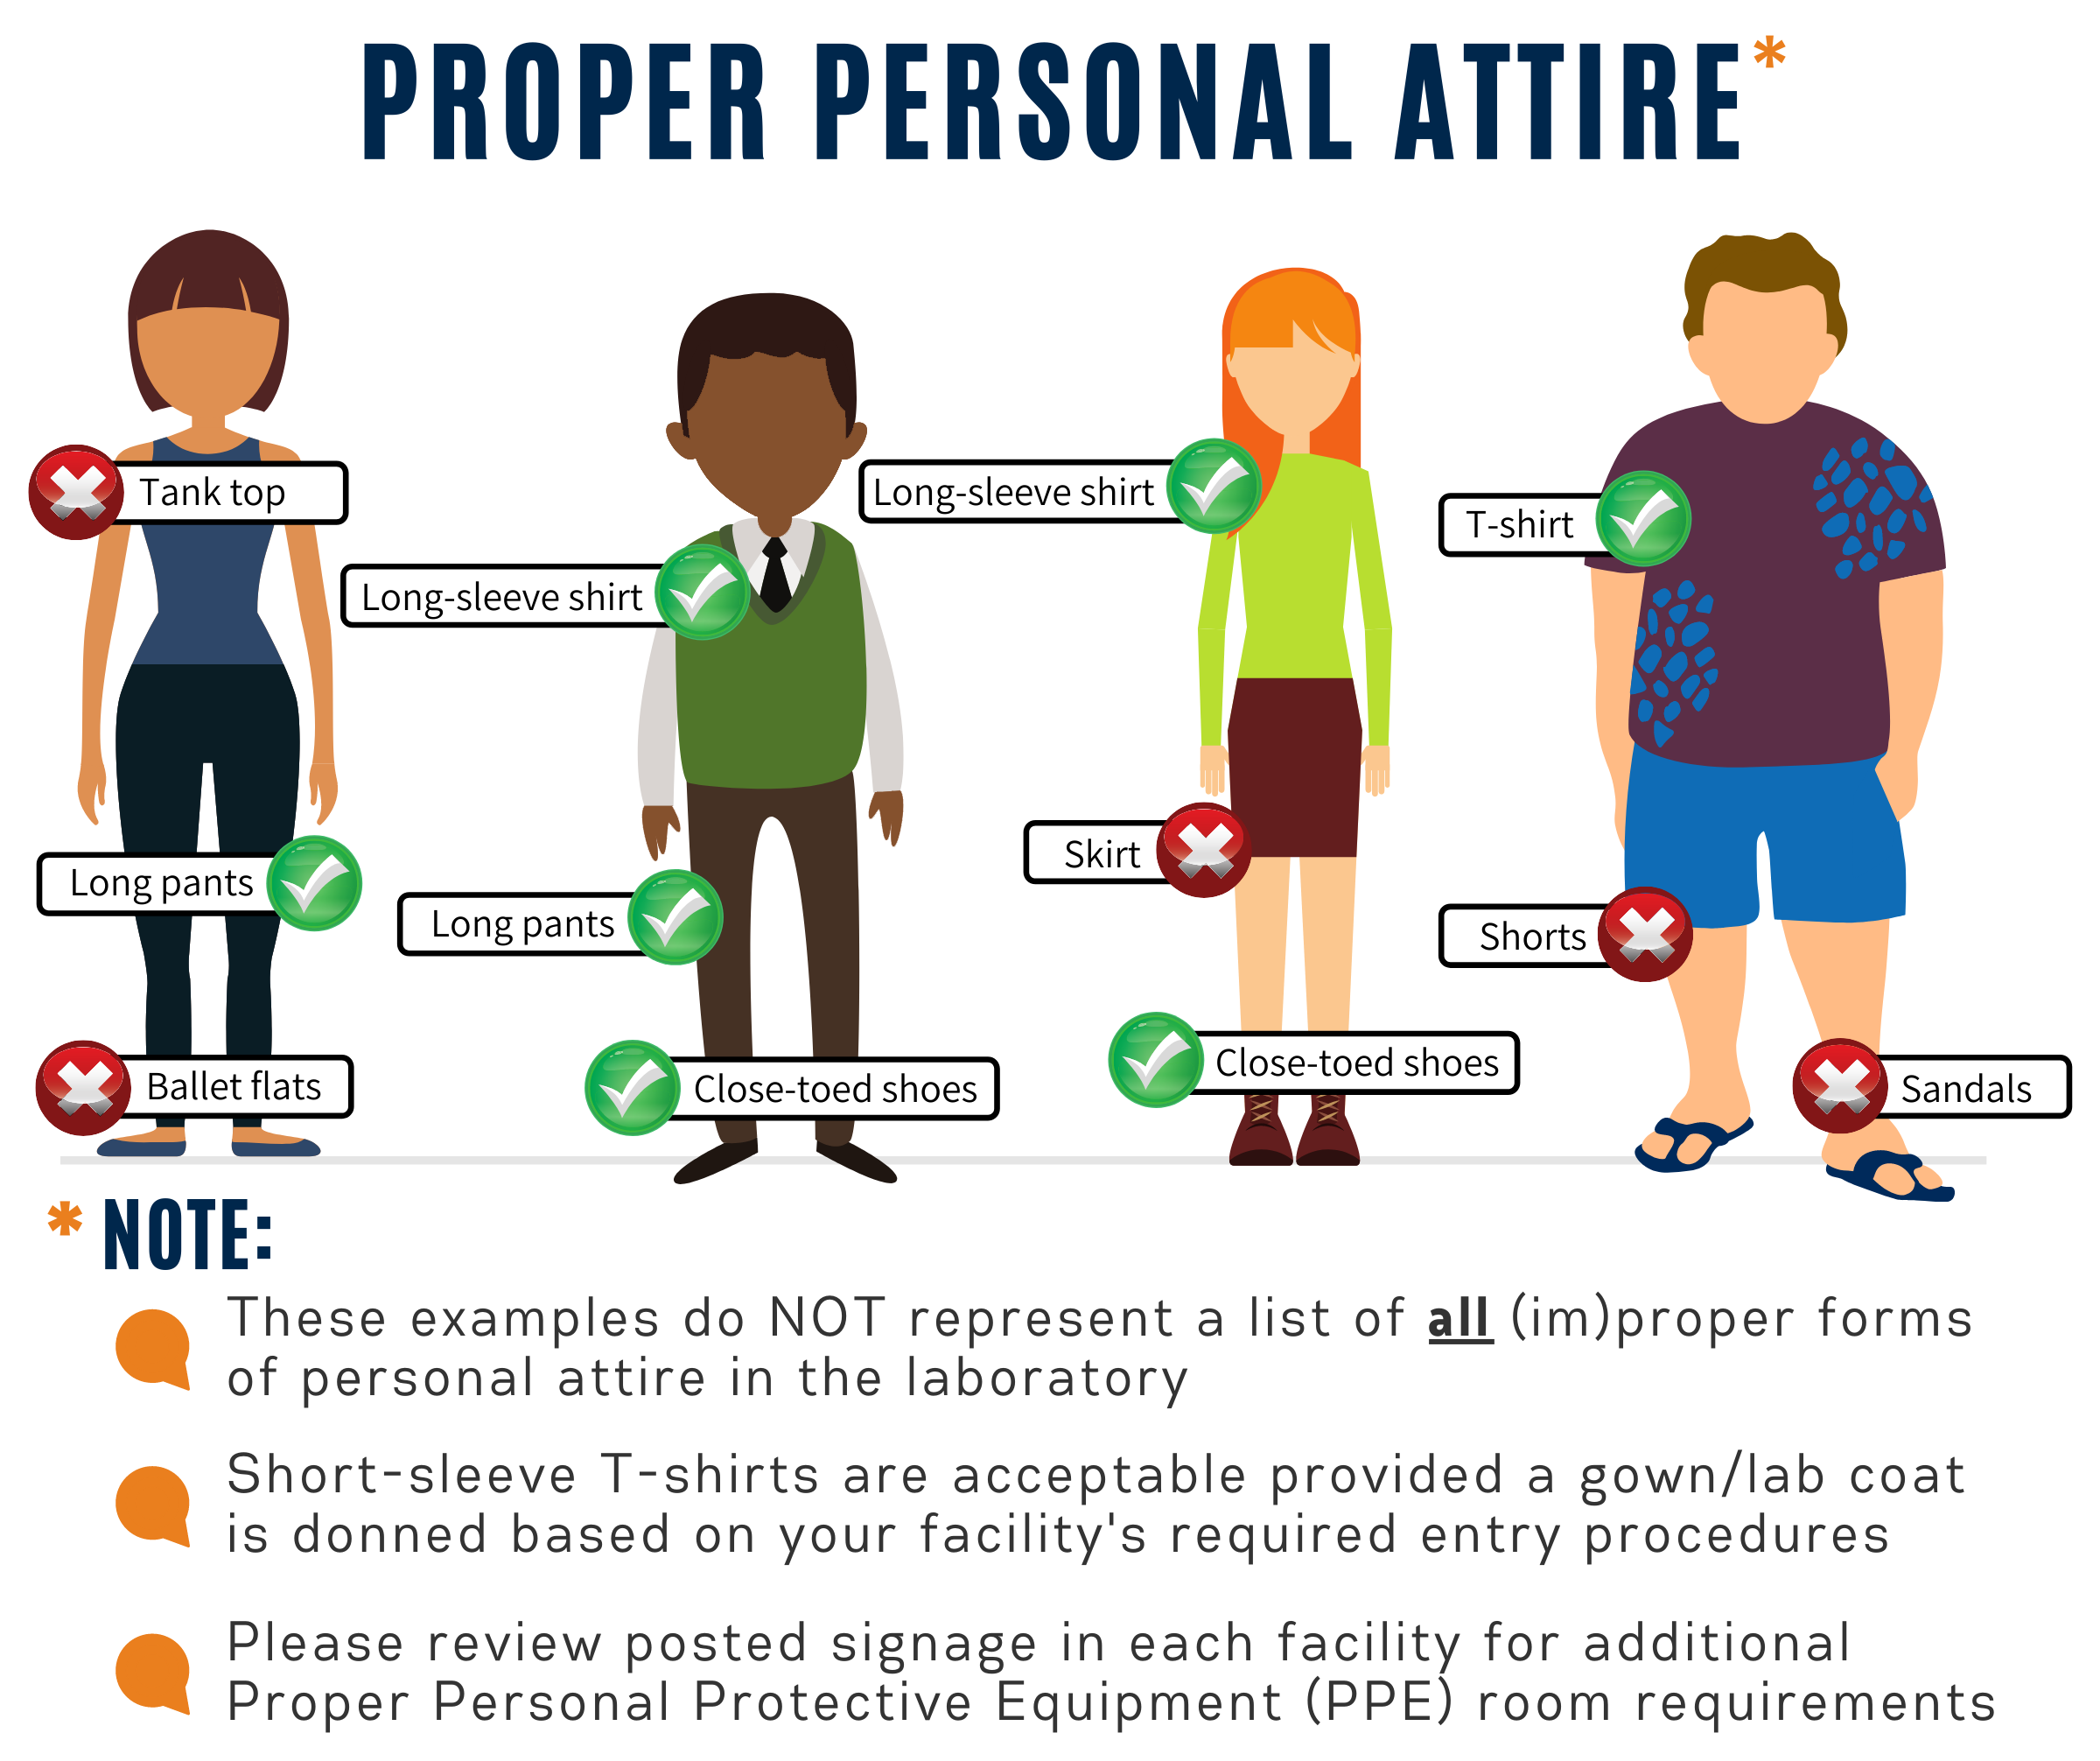 Diagram showing people wearing different personal attire in the laboratory